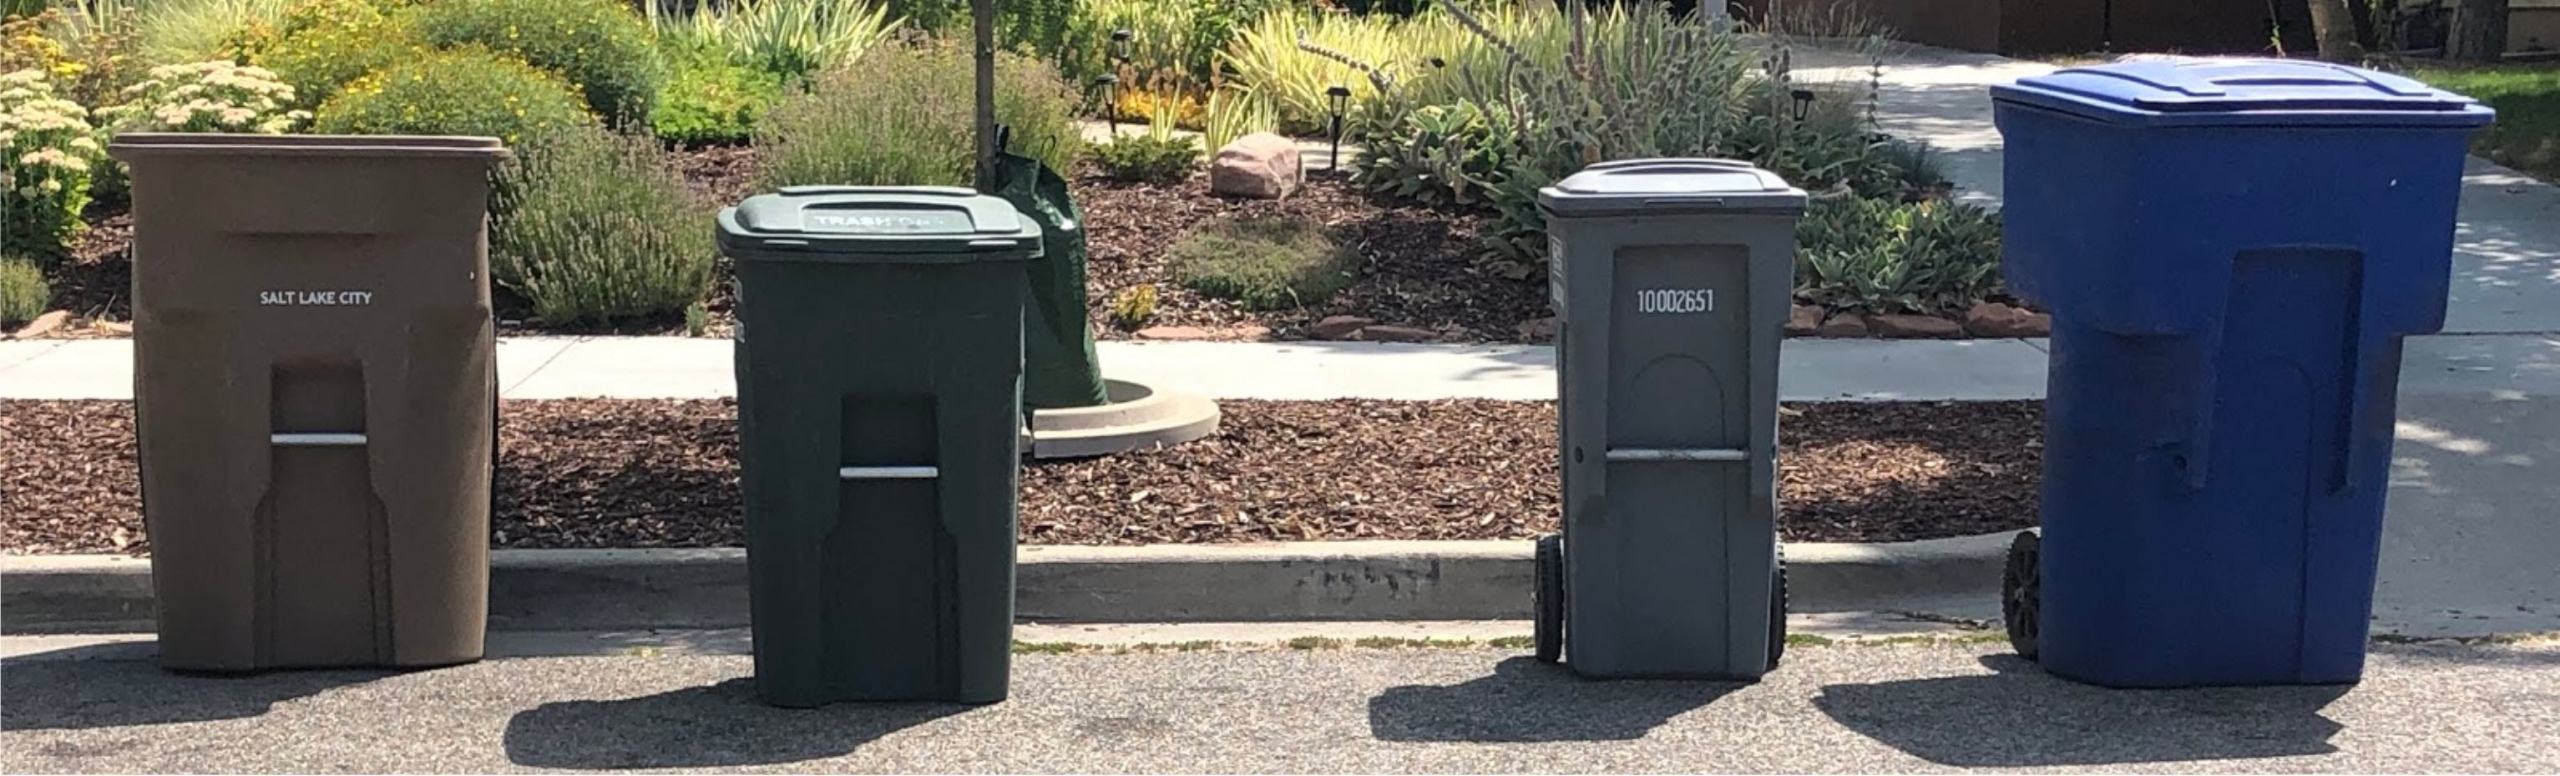 Curbside Bins with Glass Recycling Cart